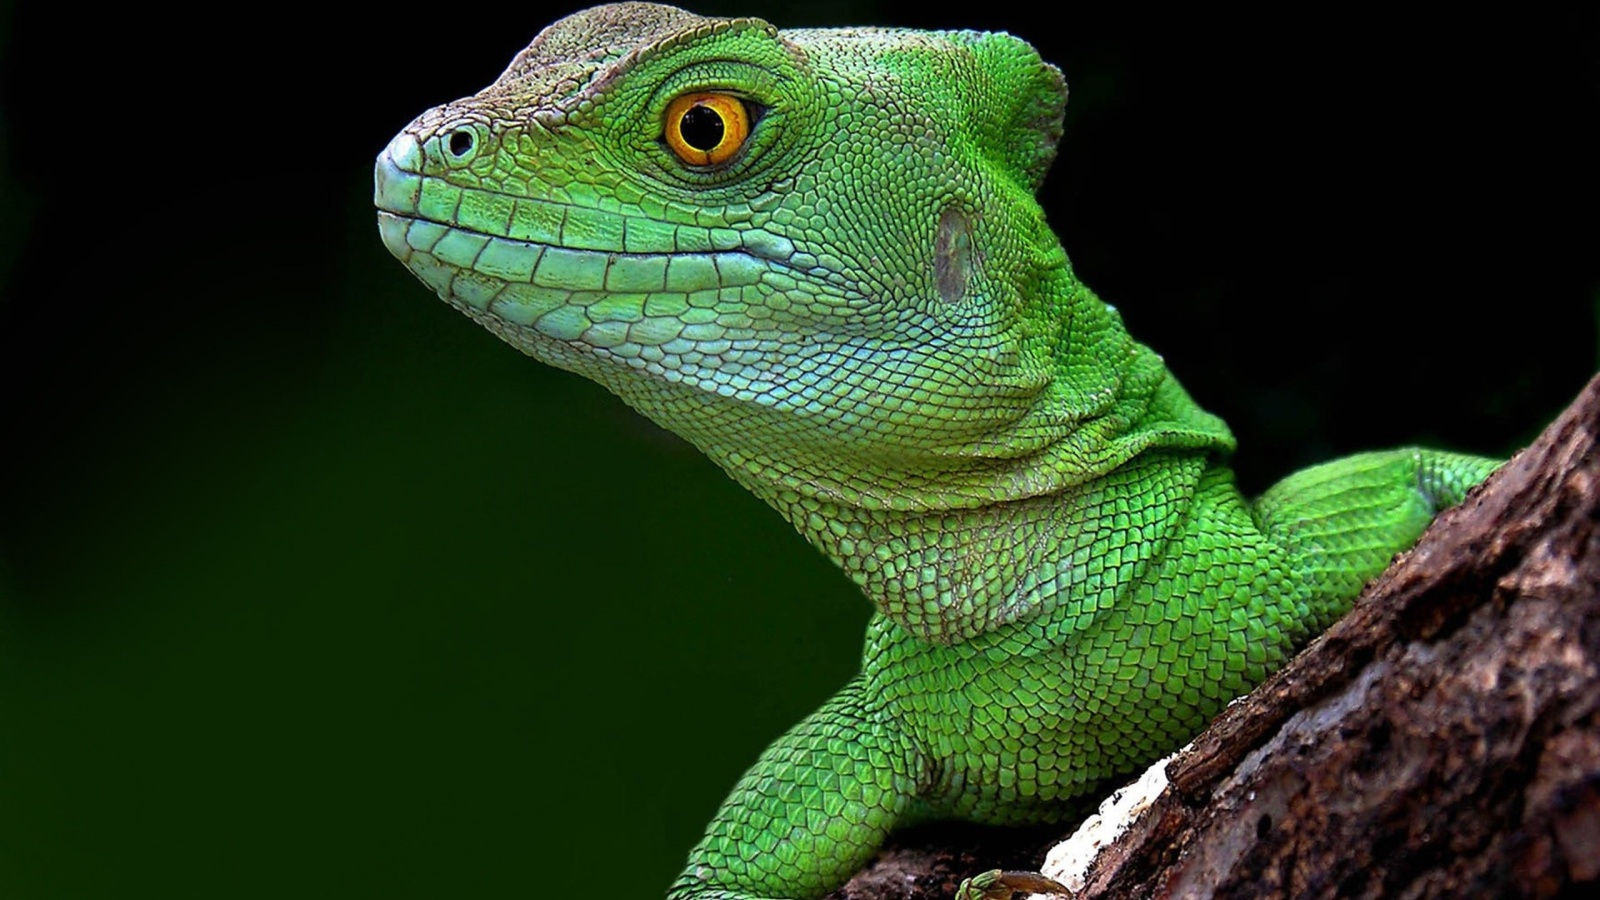 Lizard Squad DDoS-for-hire website compromised, stored